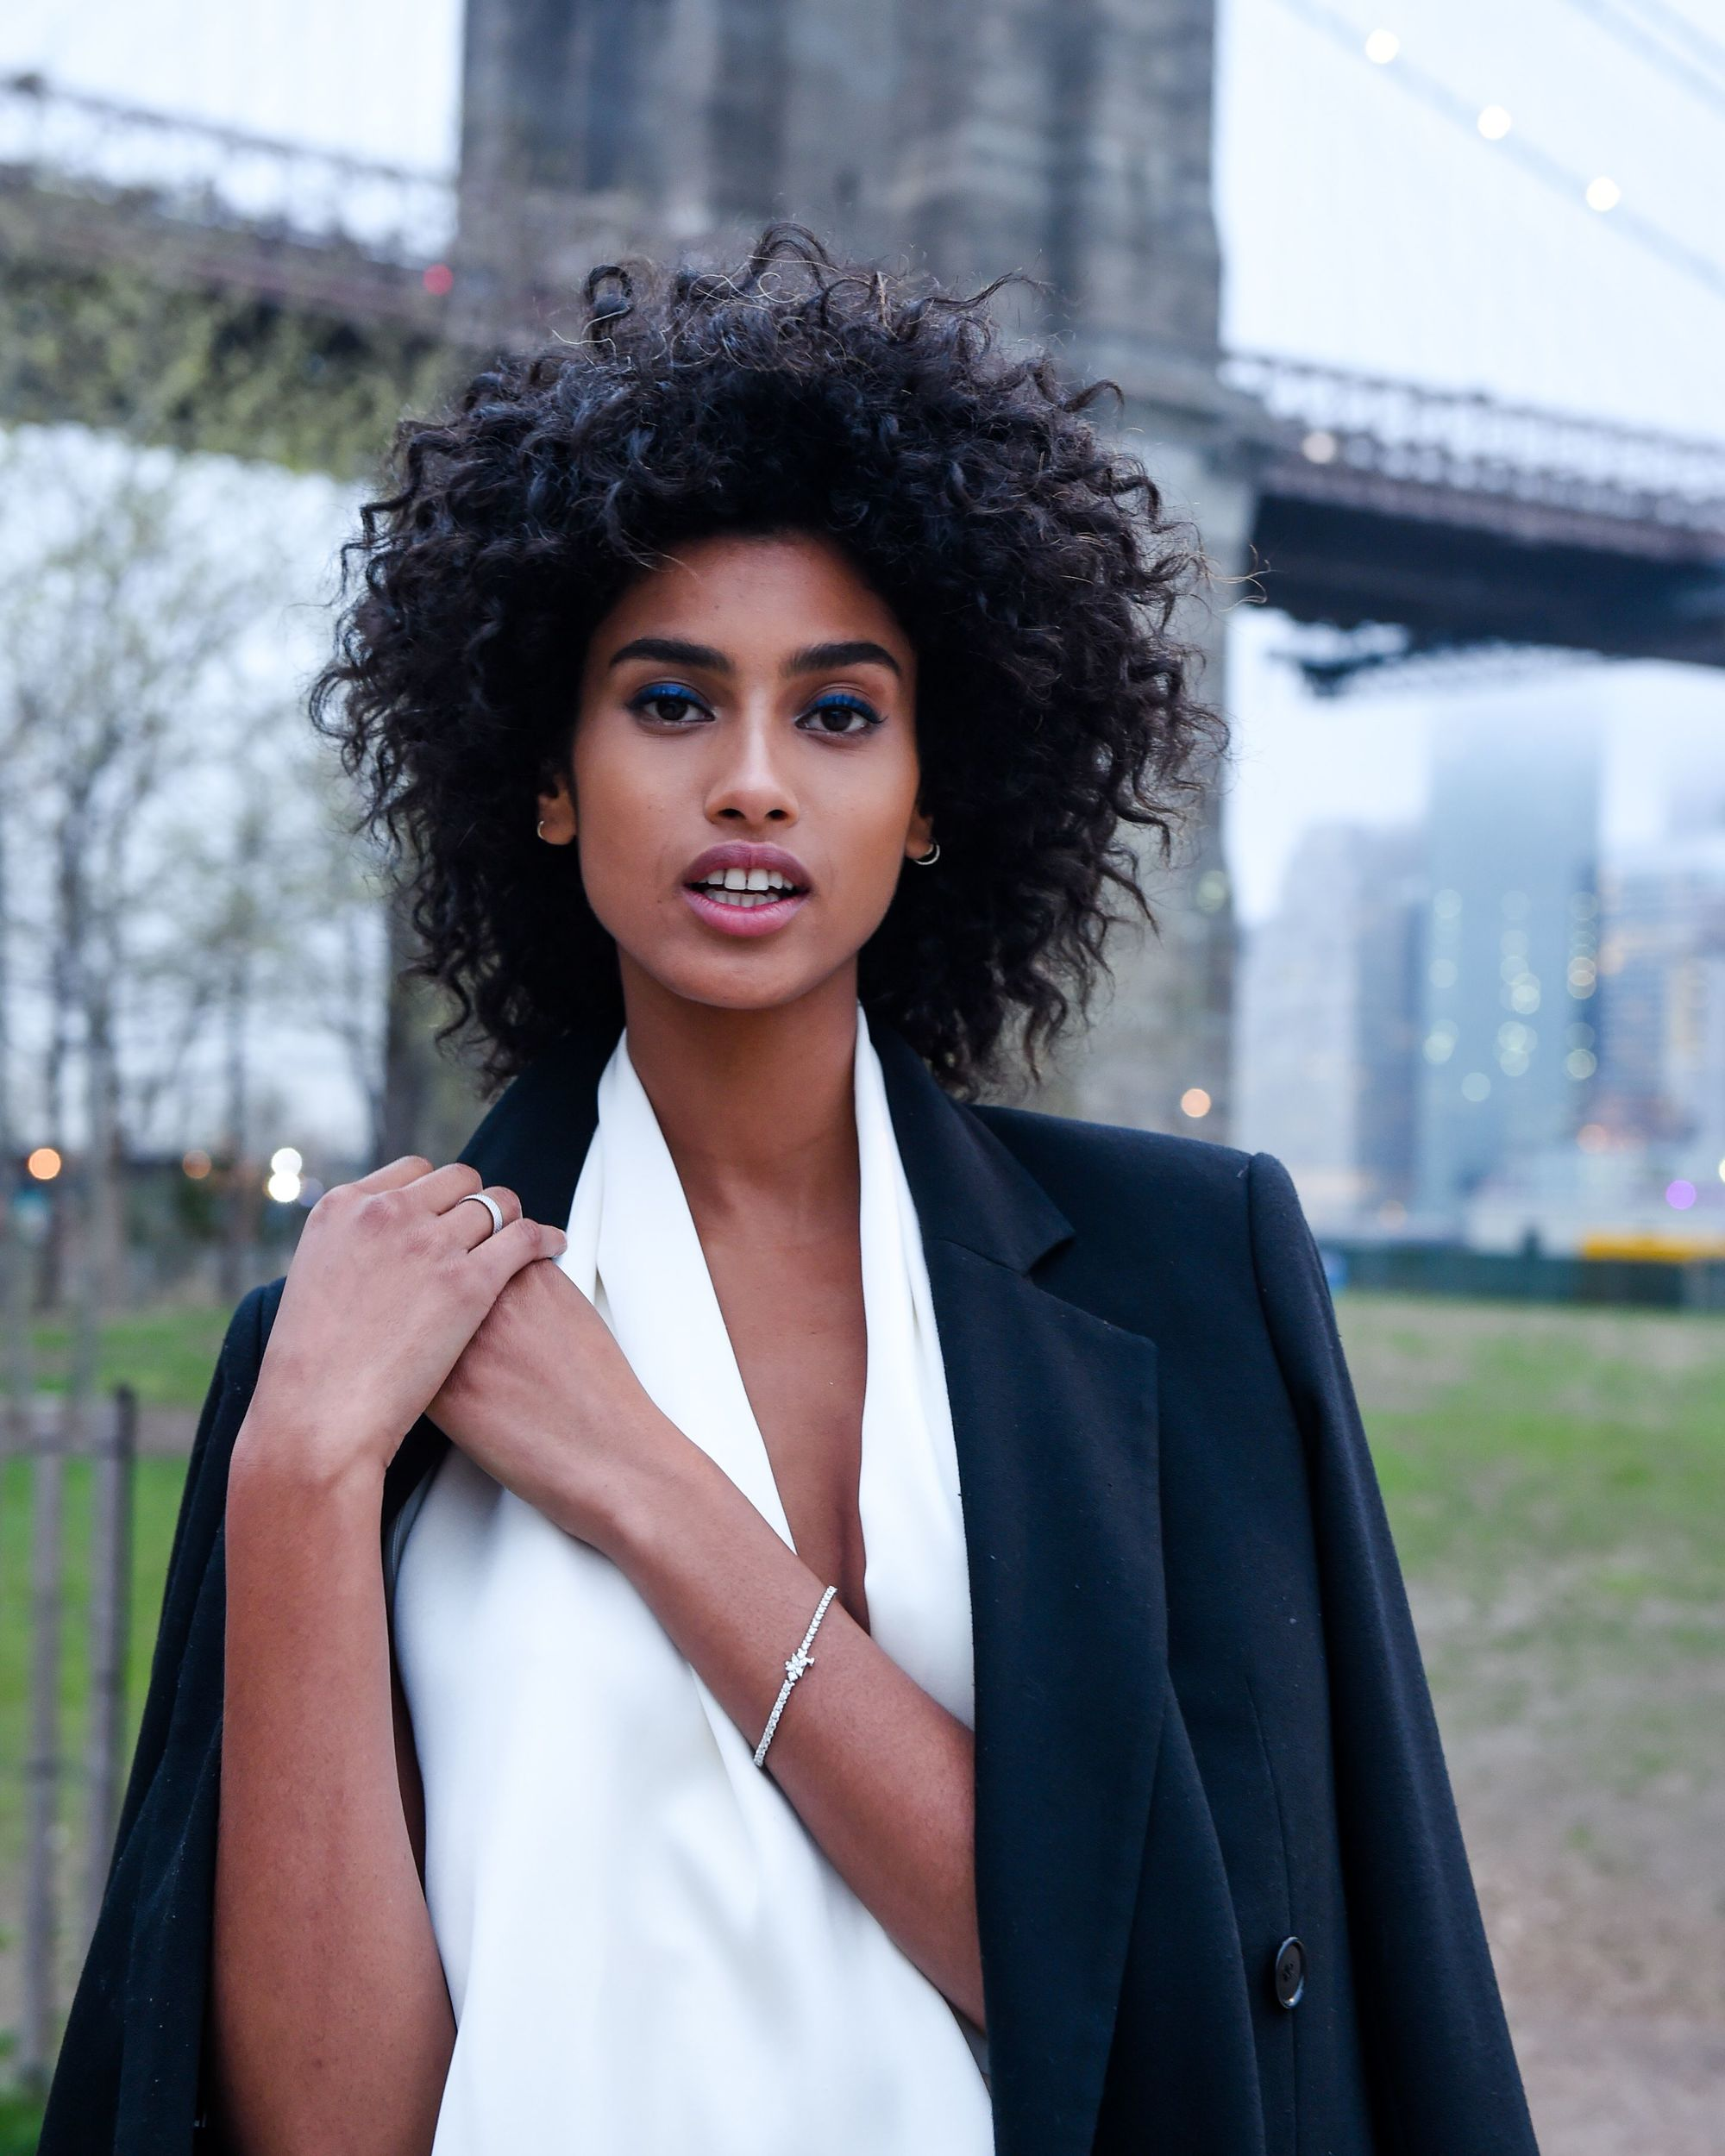 model Imaan Hammam with natural curly hair wearing a white top and black blazer